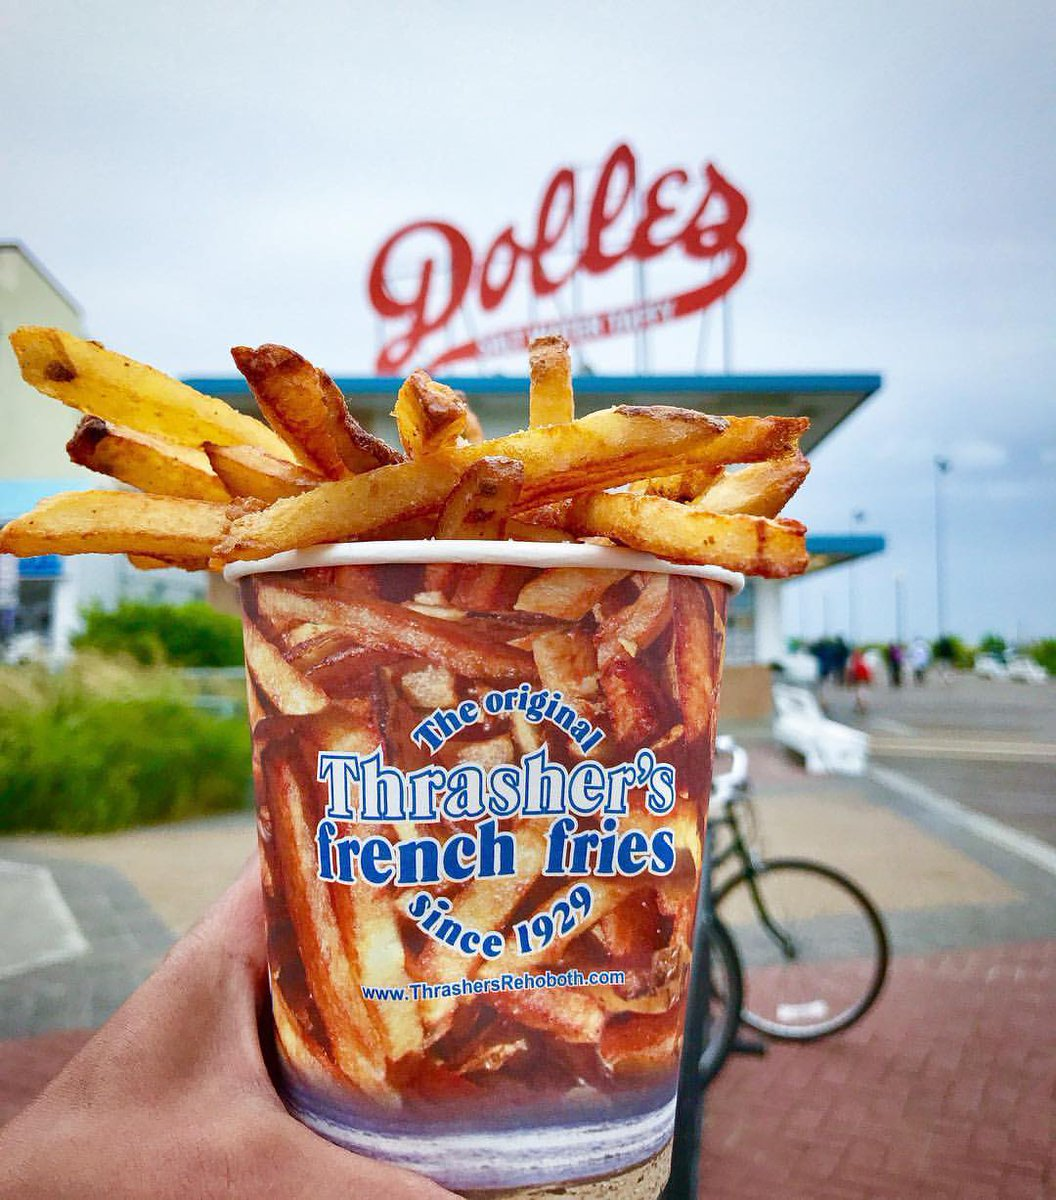 All the Sunday feels you could ask for 😍  📷 polreanforeals insta  #downtownrehoboth #wearemainstreet #mainstreetusa #mainstreet #downtown #sundayvibes #SundayFunday #frenchfries #fries #fry #thrashers #beachvibes #beachphotography #boardwalk #getaway #foodie #localeats #eat